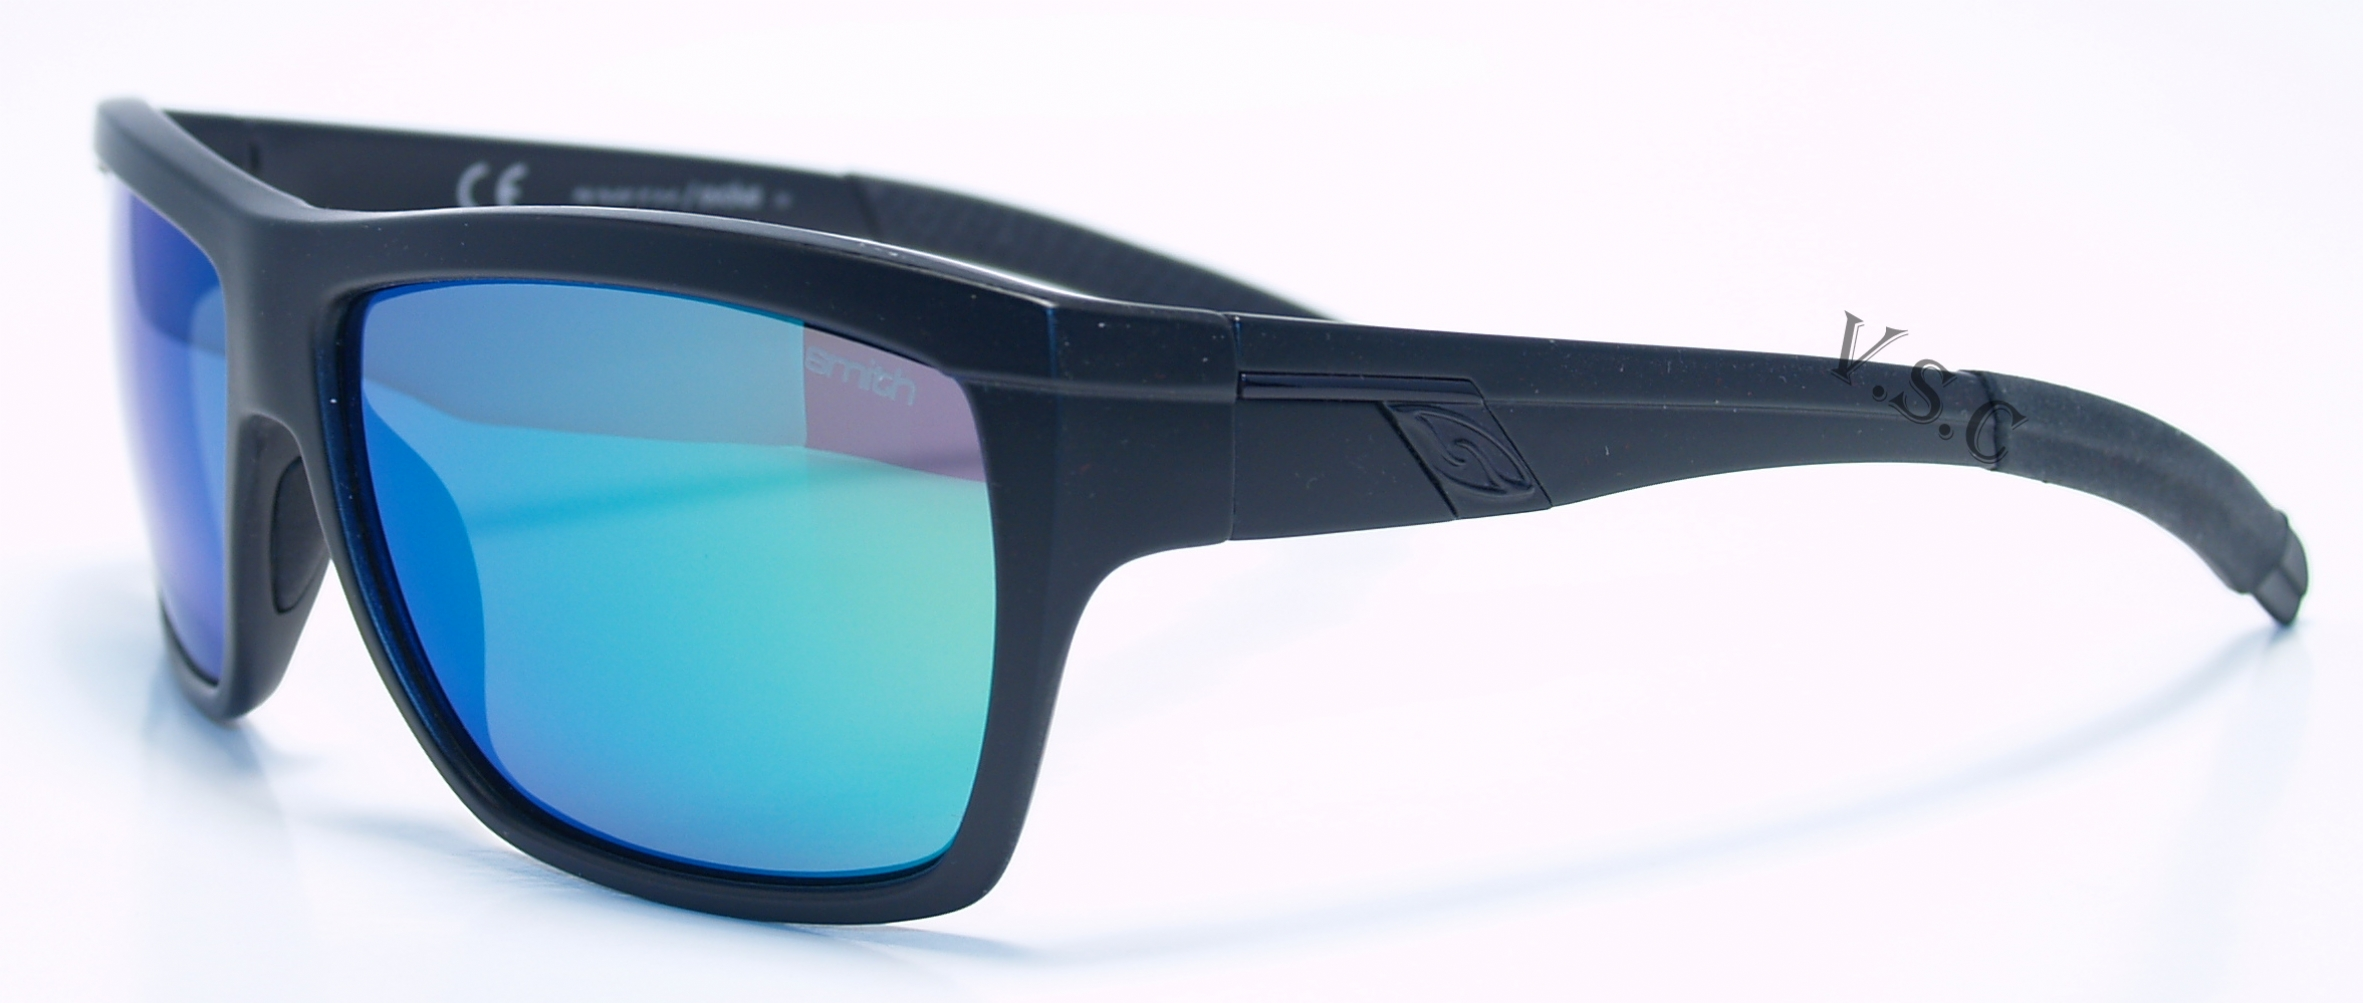 1a04a8b1b8528 Smith Rambler Polarized Sunglasses Review « Heritage Malta